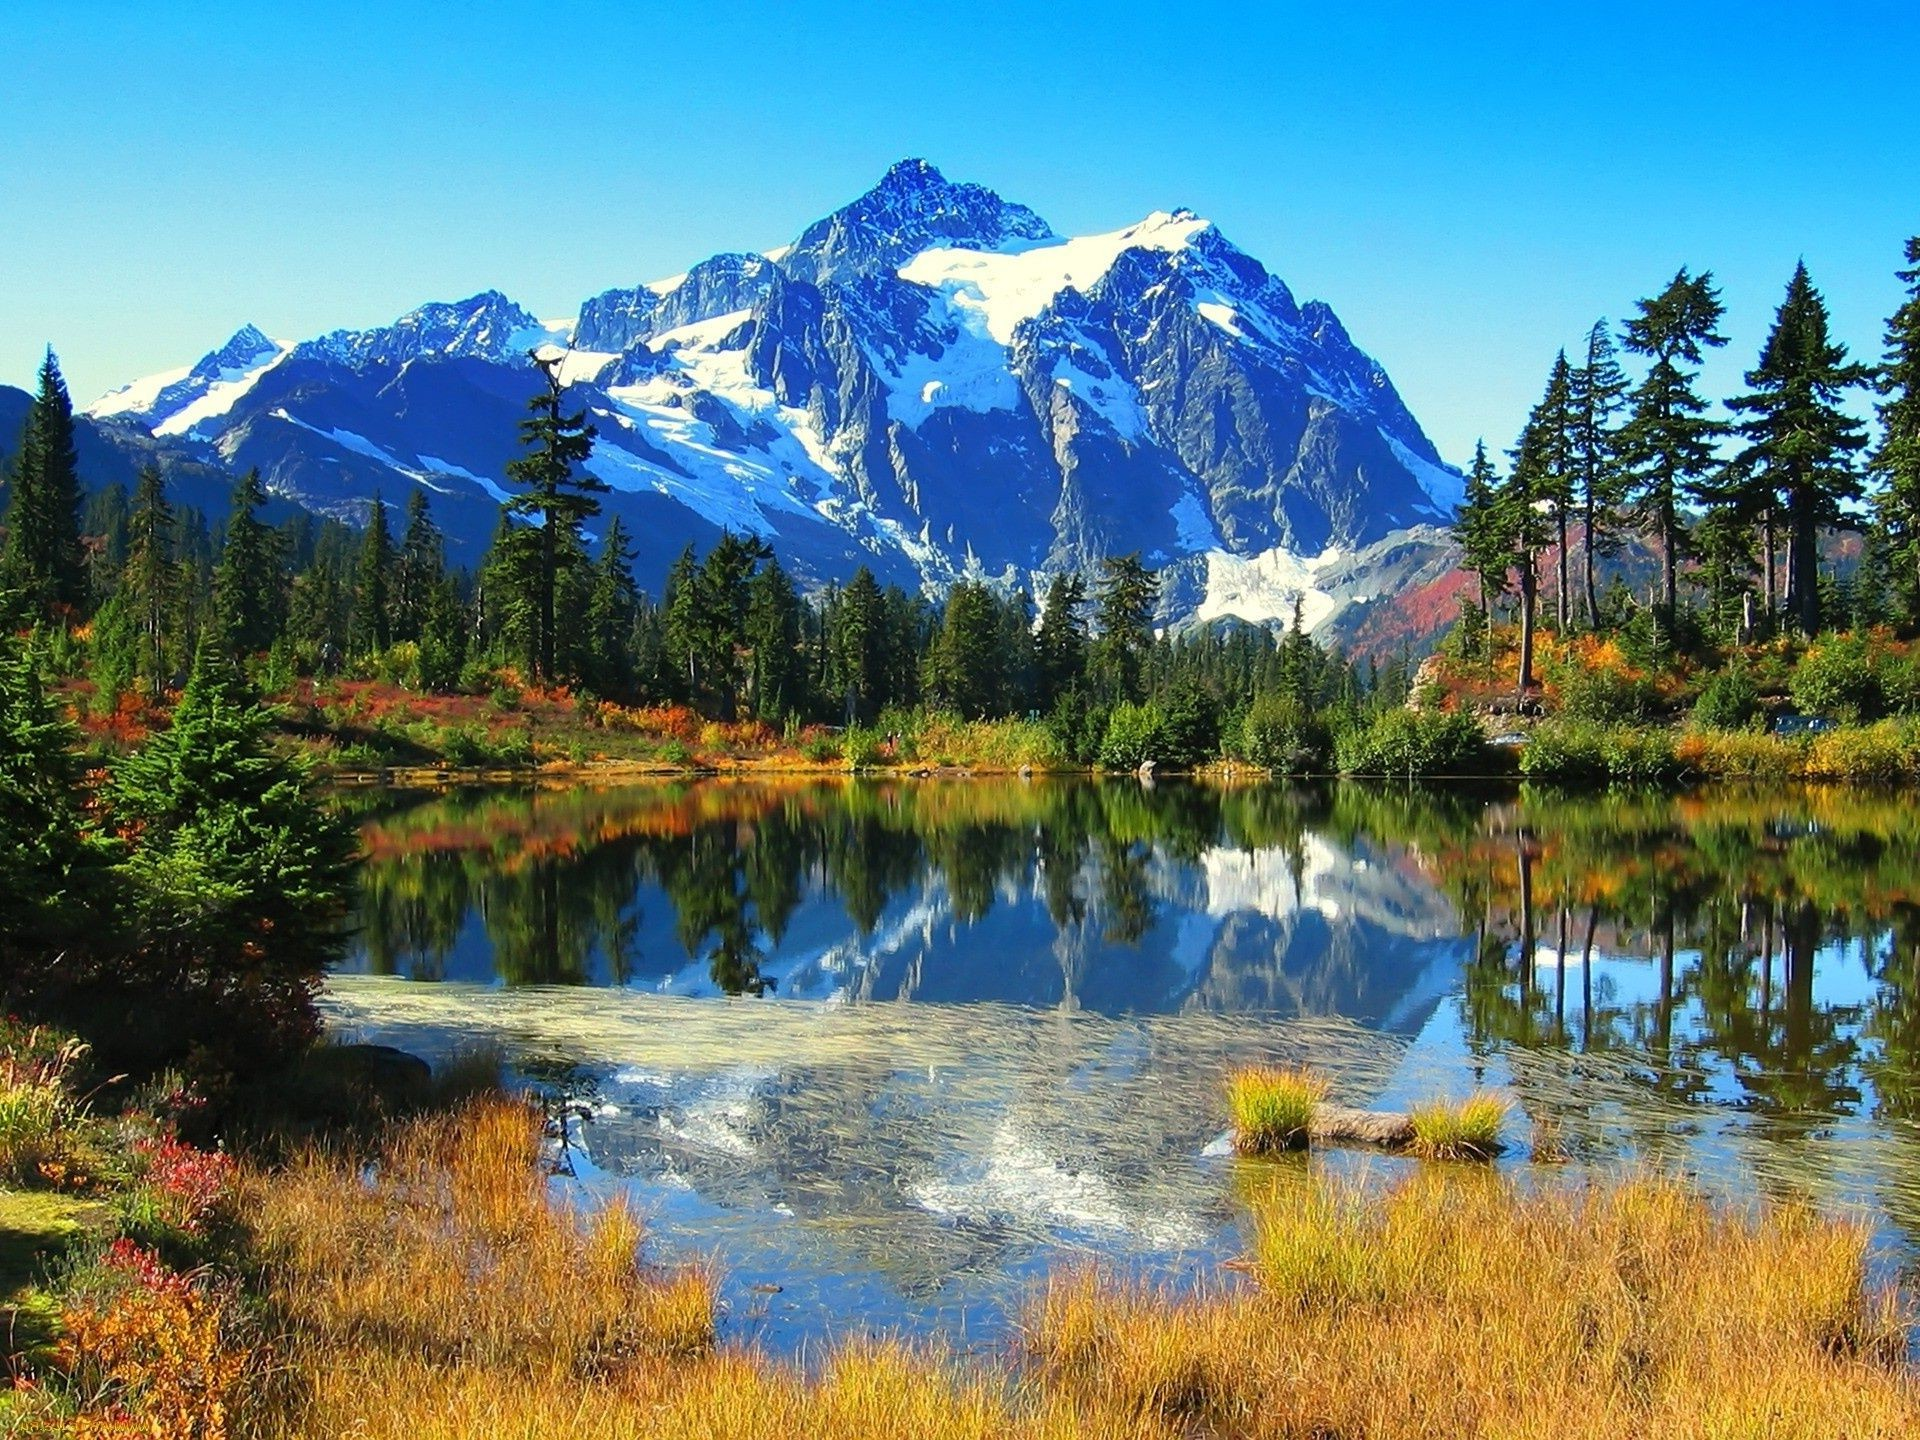 lake mountain reflection water snow scenic wood nature wild landscape outdoors travel evergreen